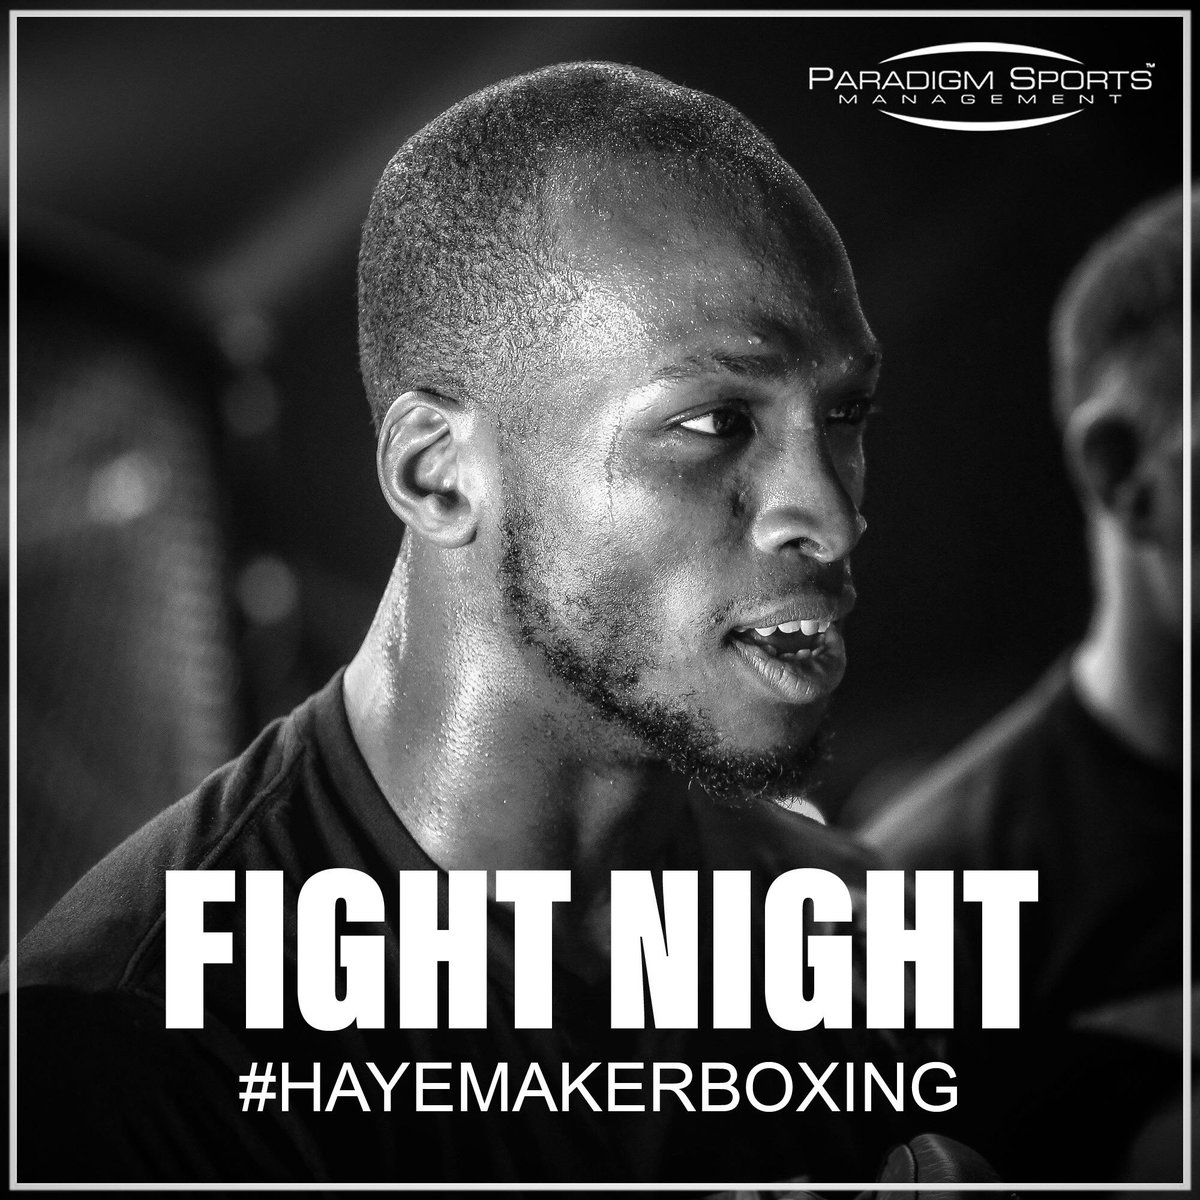 The day has arrived. Michael Page (@Michaelpage247) looks to secure the victory at Hayemaker Fight Night. #FightNight #HayemakerBoxing #GP 🥊🐍🇬🇧